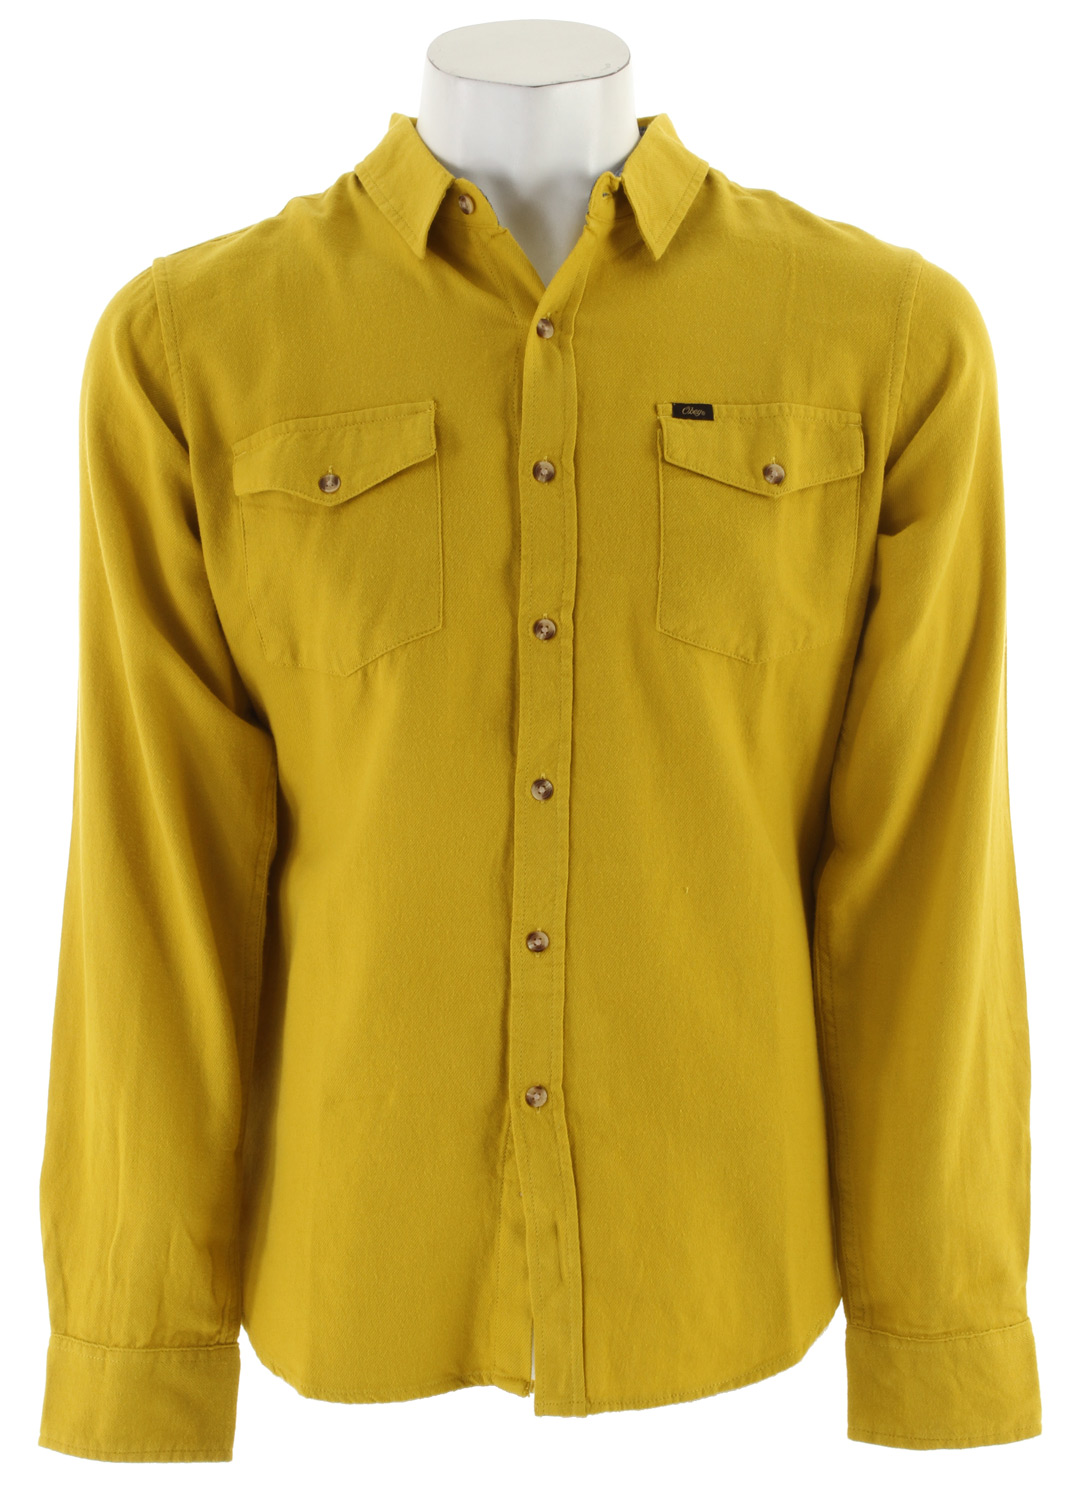 This Obey Arrington Shirt is a very popular item due to its modern look and high quality.  This is a slim fit long sleeve woven shirt. The Obey Arrington Shirt comes with the added convenience of two flap chest pockets. The material is made with 100% cotton making this shirt both breathable and comfortable.  This shirt is a button down so you can have the ability to layer it with other articles of clothing. The Arrington Shirt is a great investment for any wardrobe due to the functionality and comfort!Key Features of the Obey Arrington Shirt:  Slim fit long sleeve woven  Contrast chambray at interior collar stand and double check pockets  100% cotton - $37.95